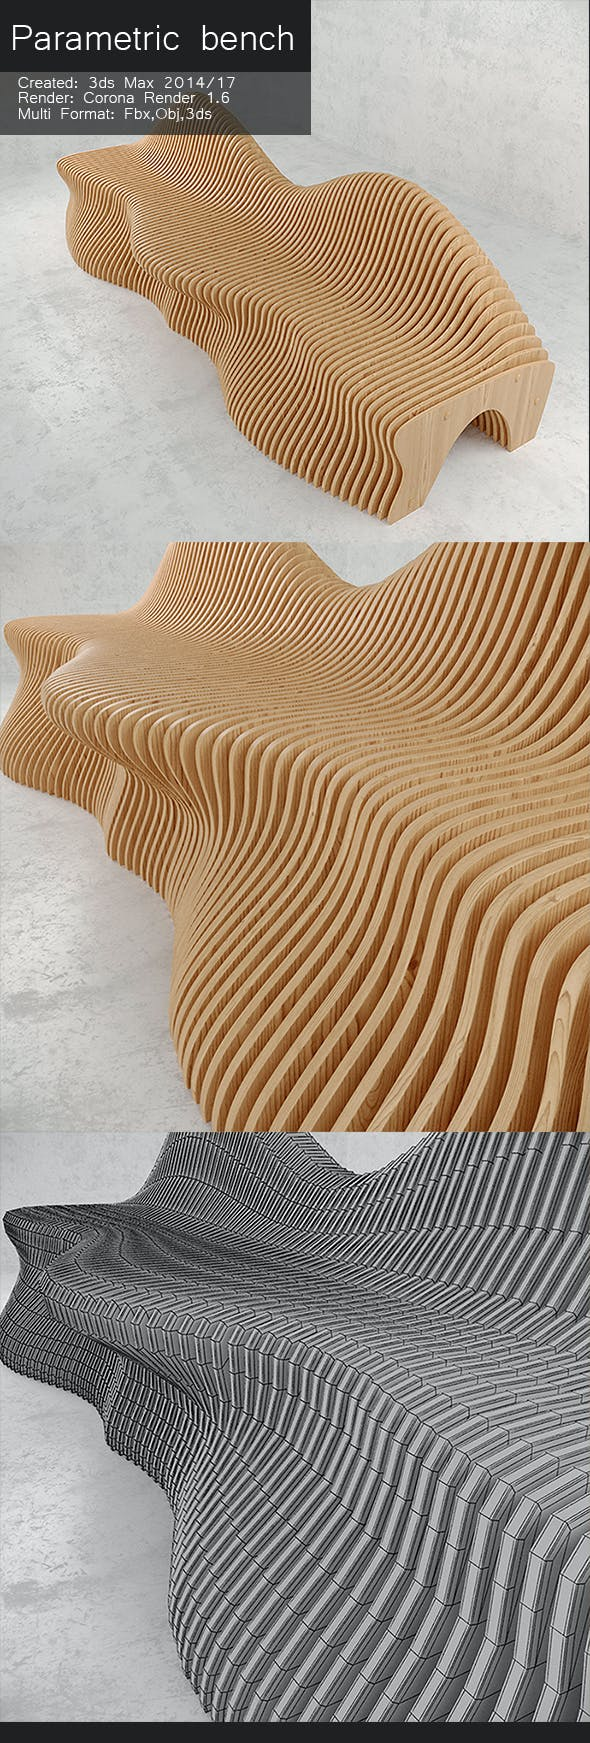 Parametric bench - 3DOcean Item for Sale